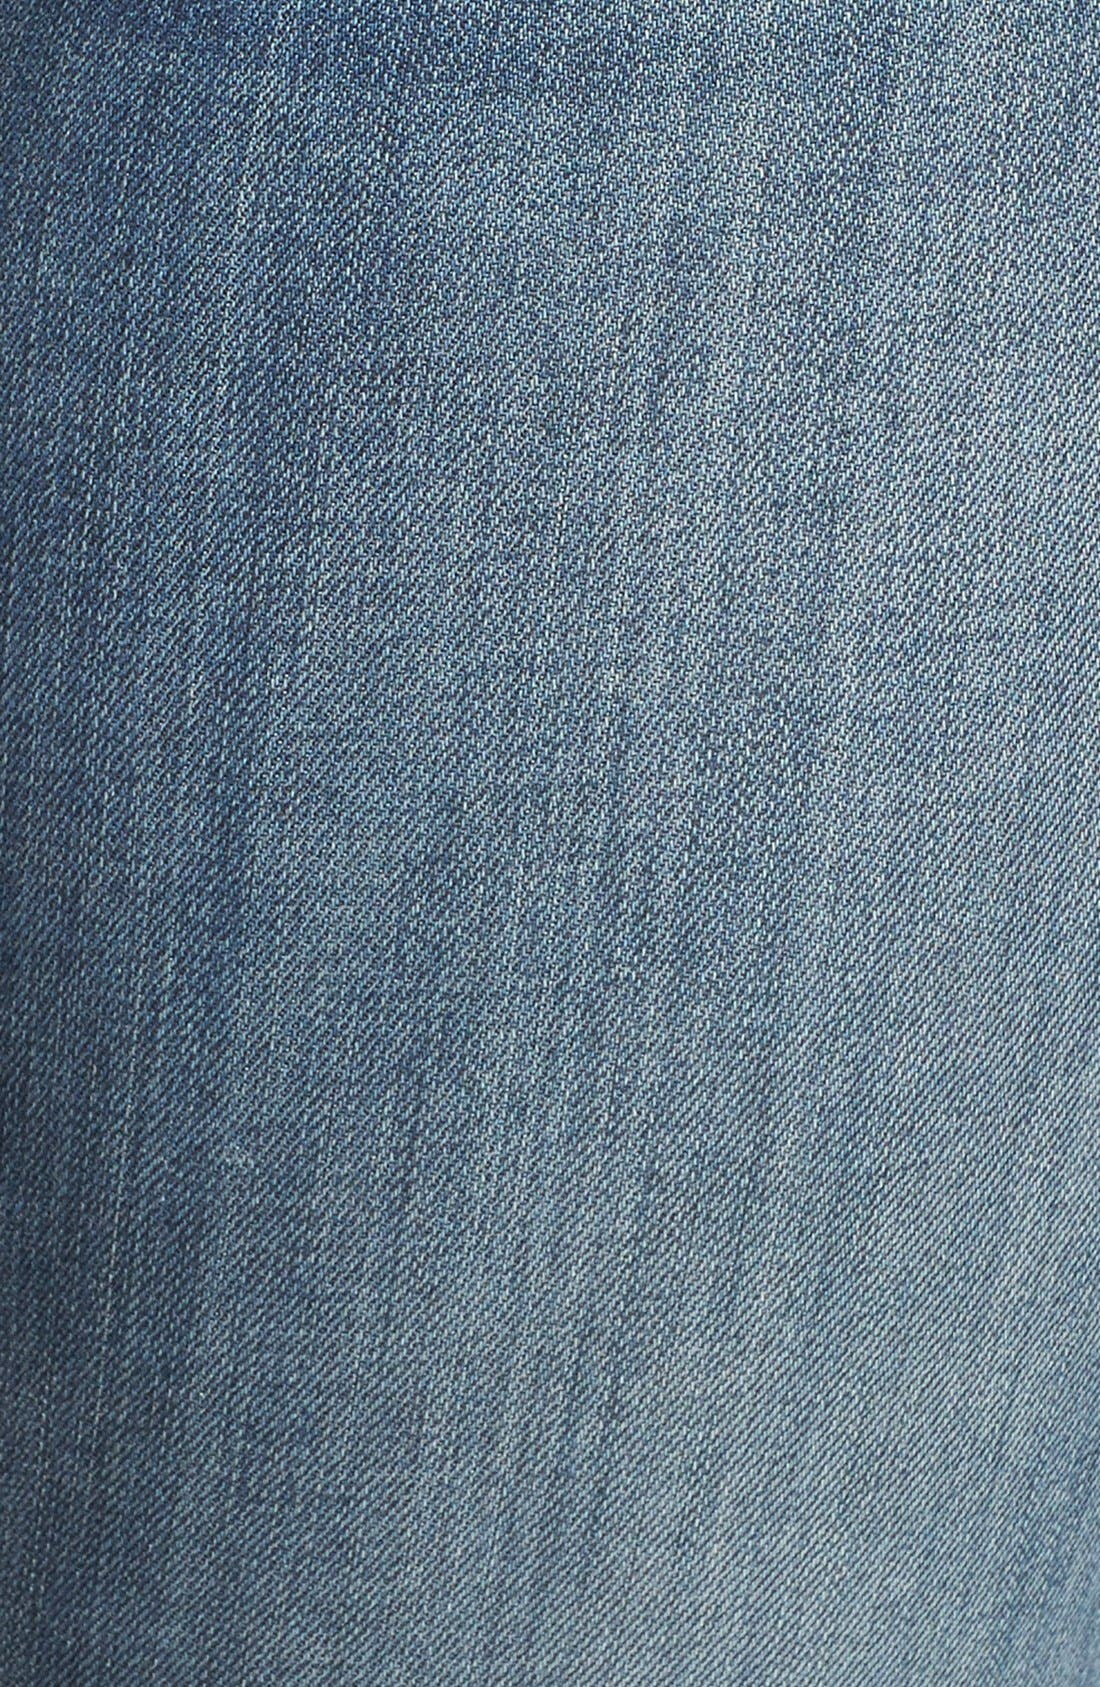 'Reese' Crop Flare Leg Jeans,                             Alternate thumbnail 5, color,                             PERFECTION